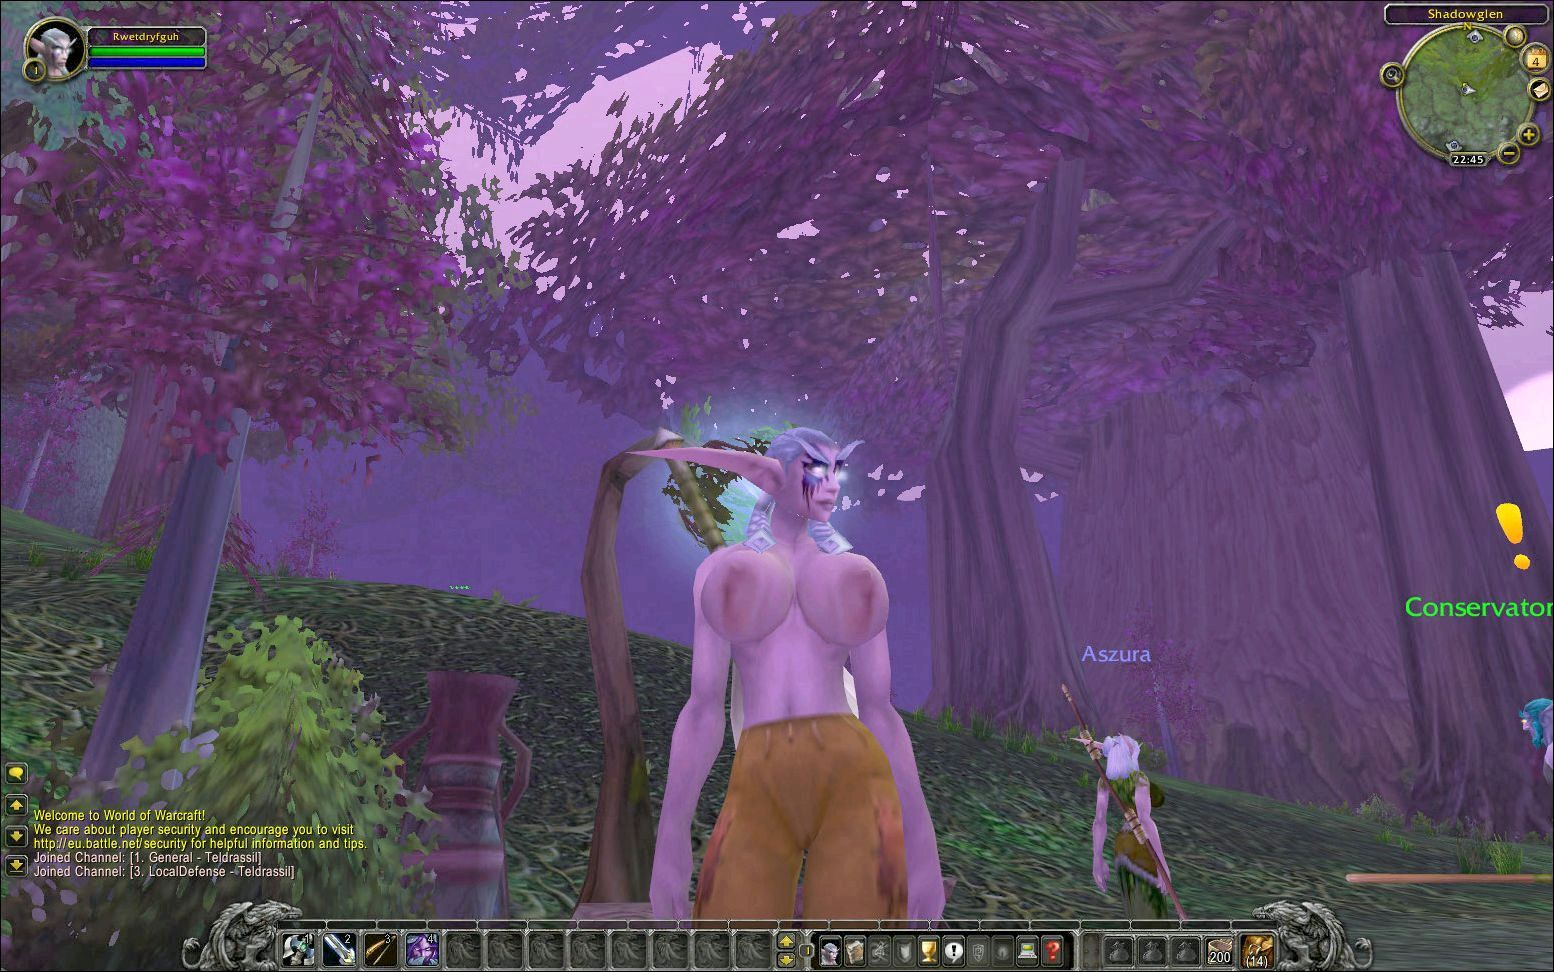 World of warcraft nude mod skins nsfw thumbs